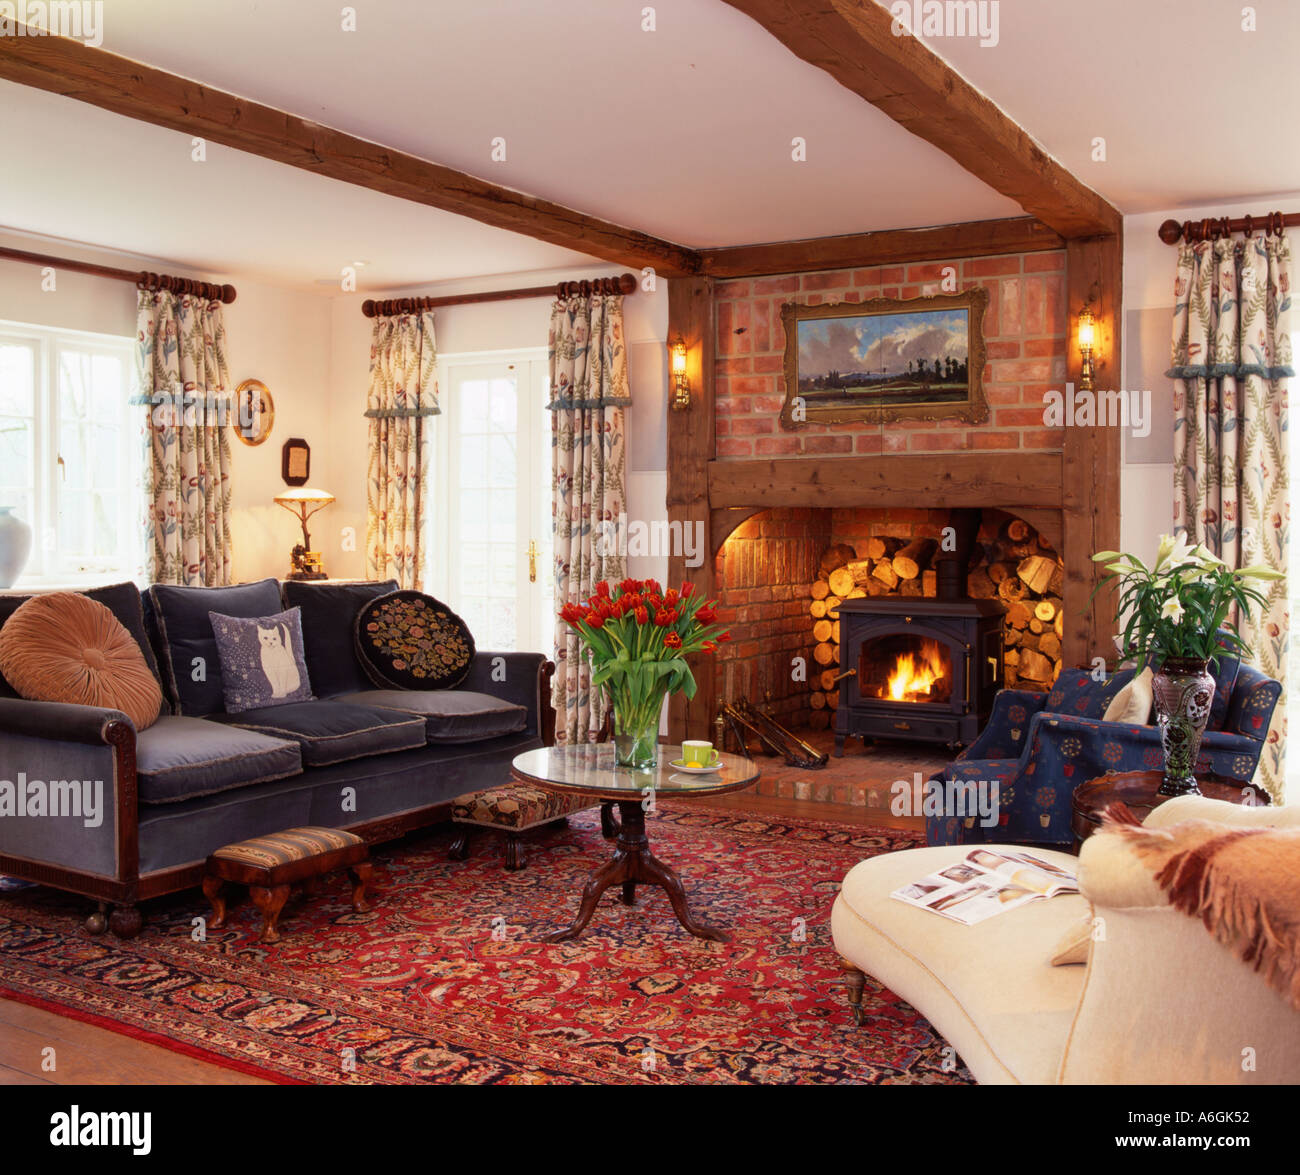 country living rooms uk paint colors for room 2018 a traditional berkshire stock photo 3777361